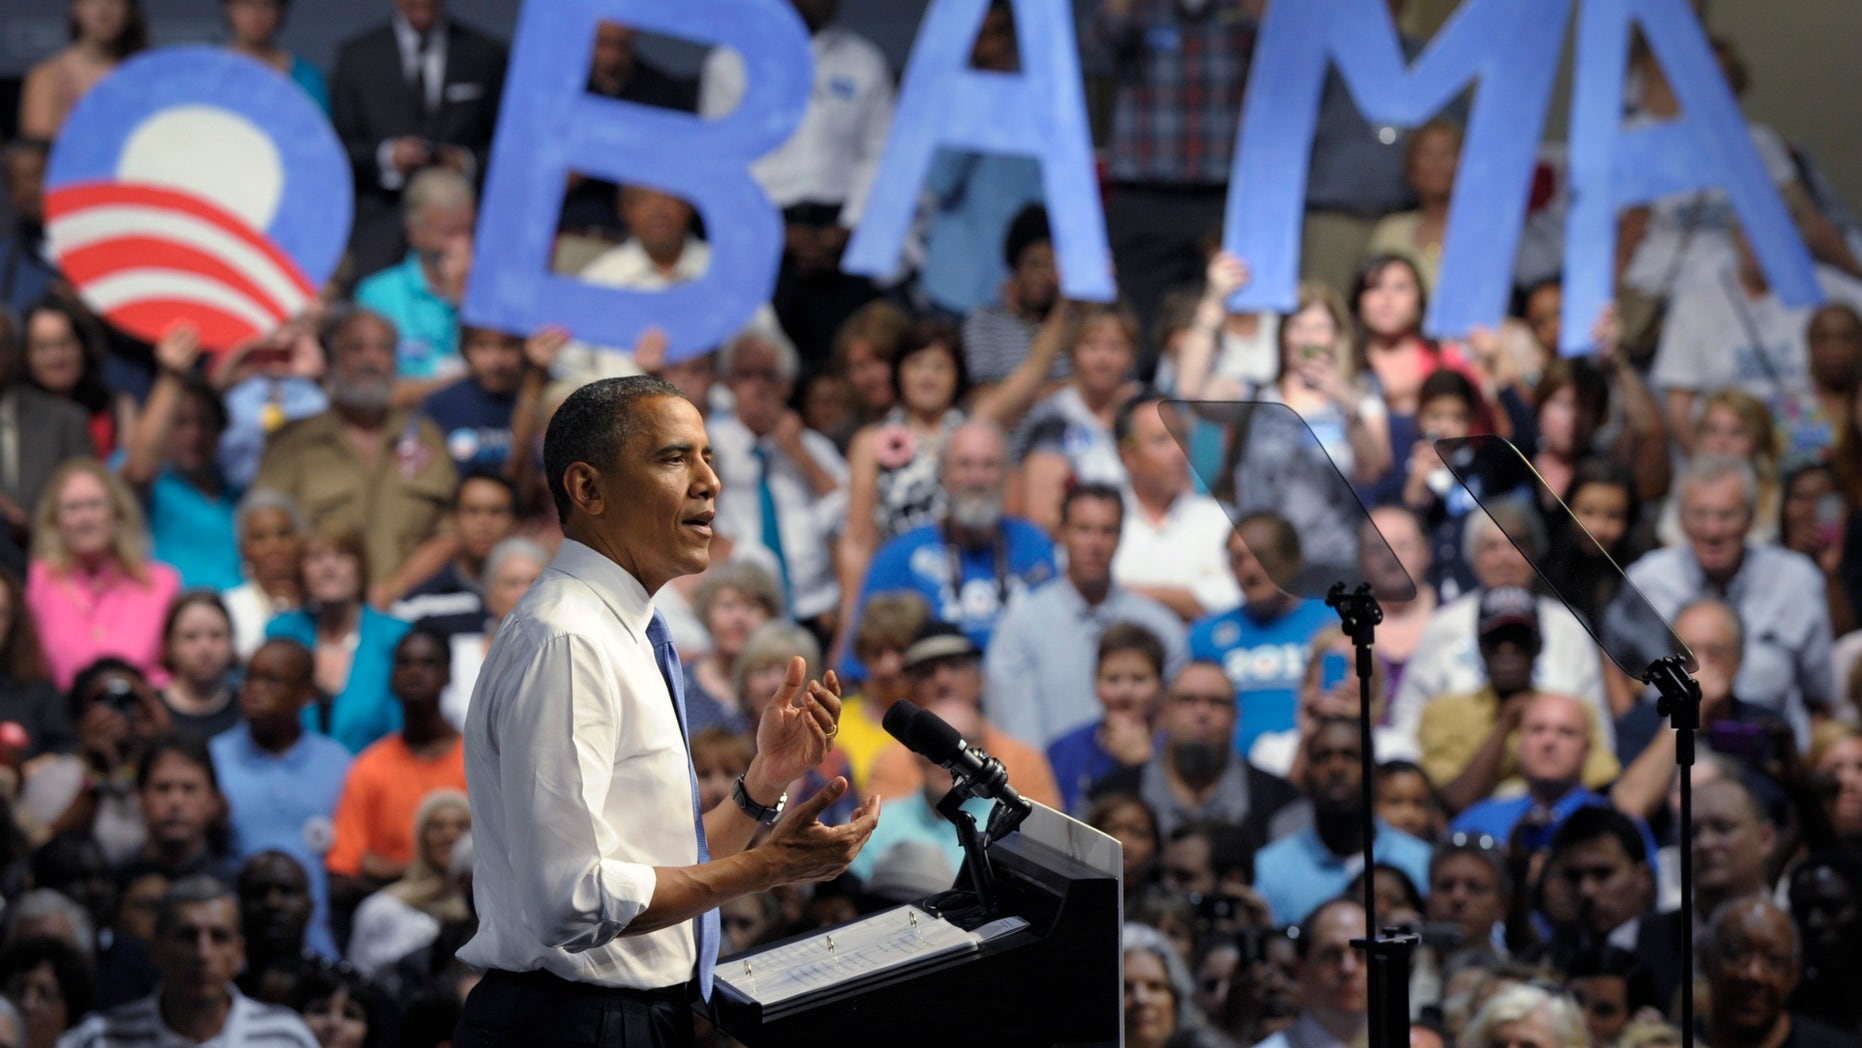 July 19, 2012: President Barack Obama speaks at a campaign event at the Prime Osborn Convention Center in Jacksonville, Fla.